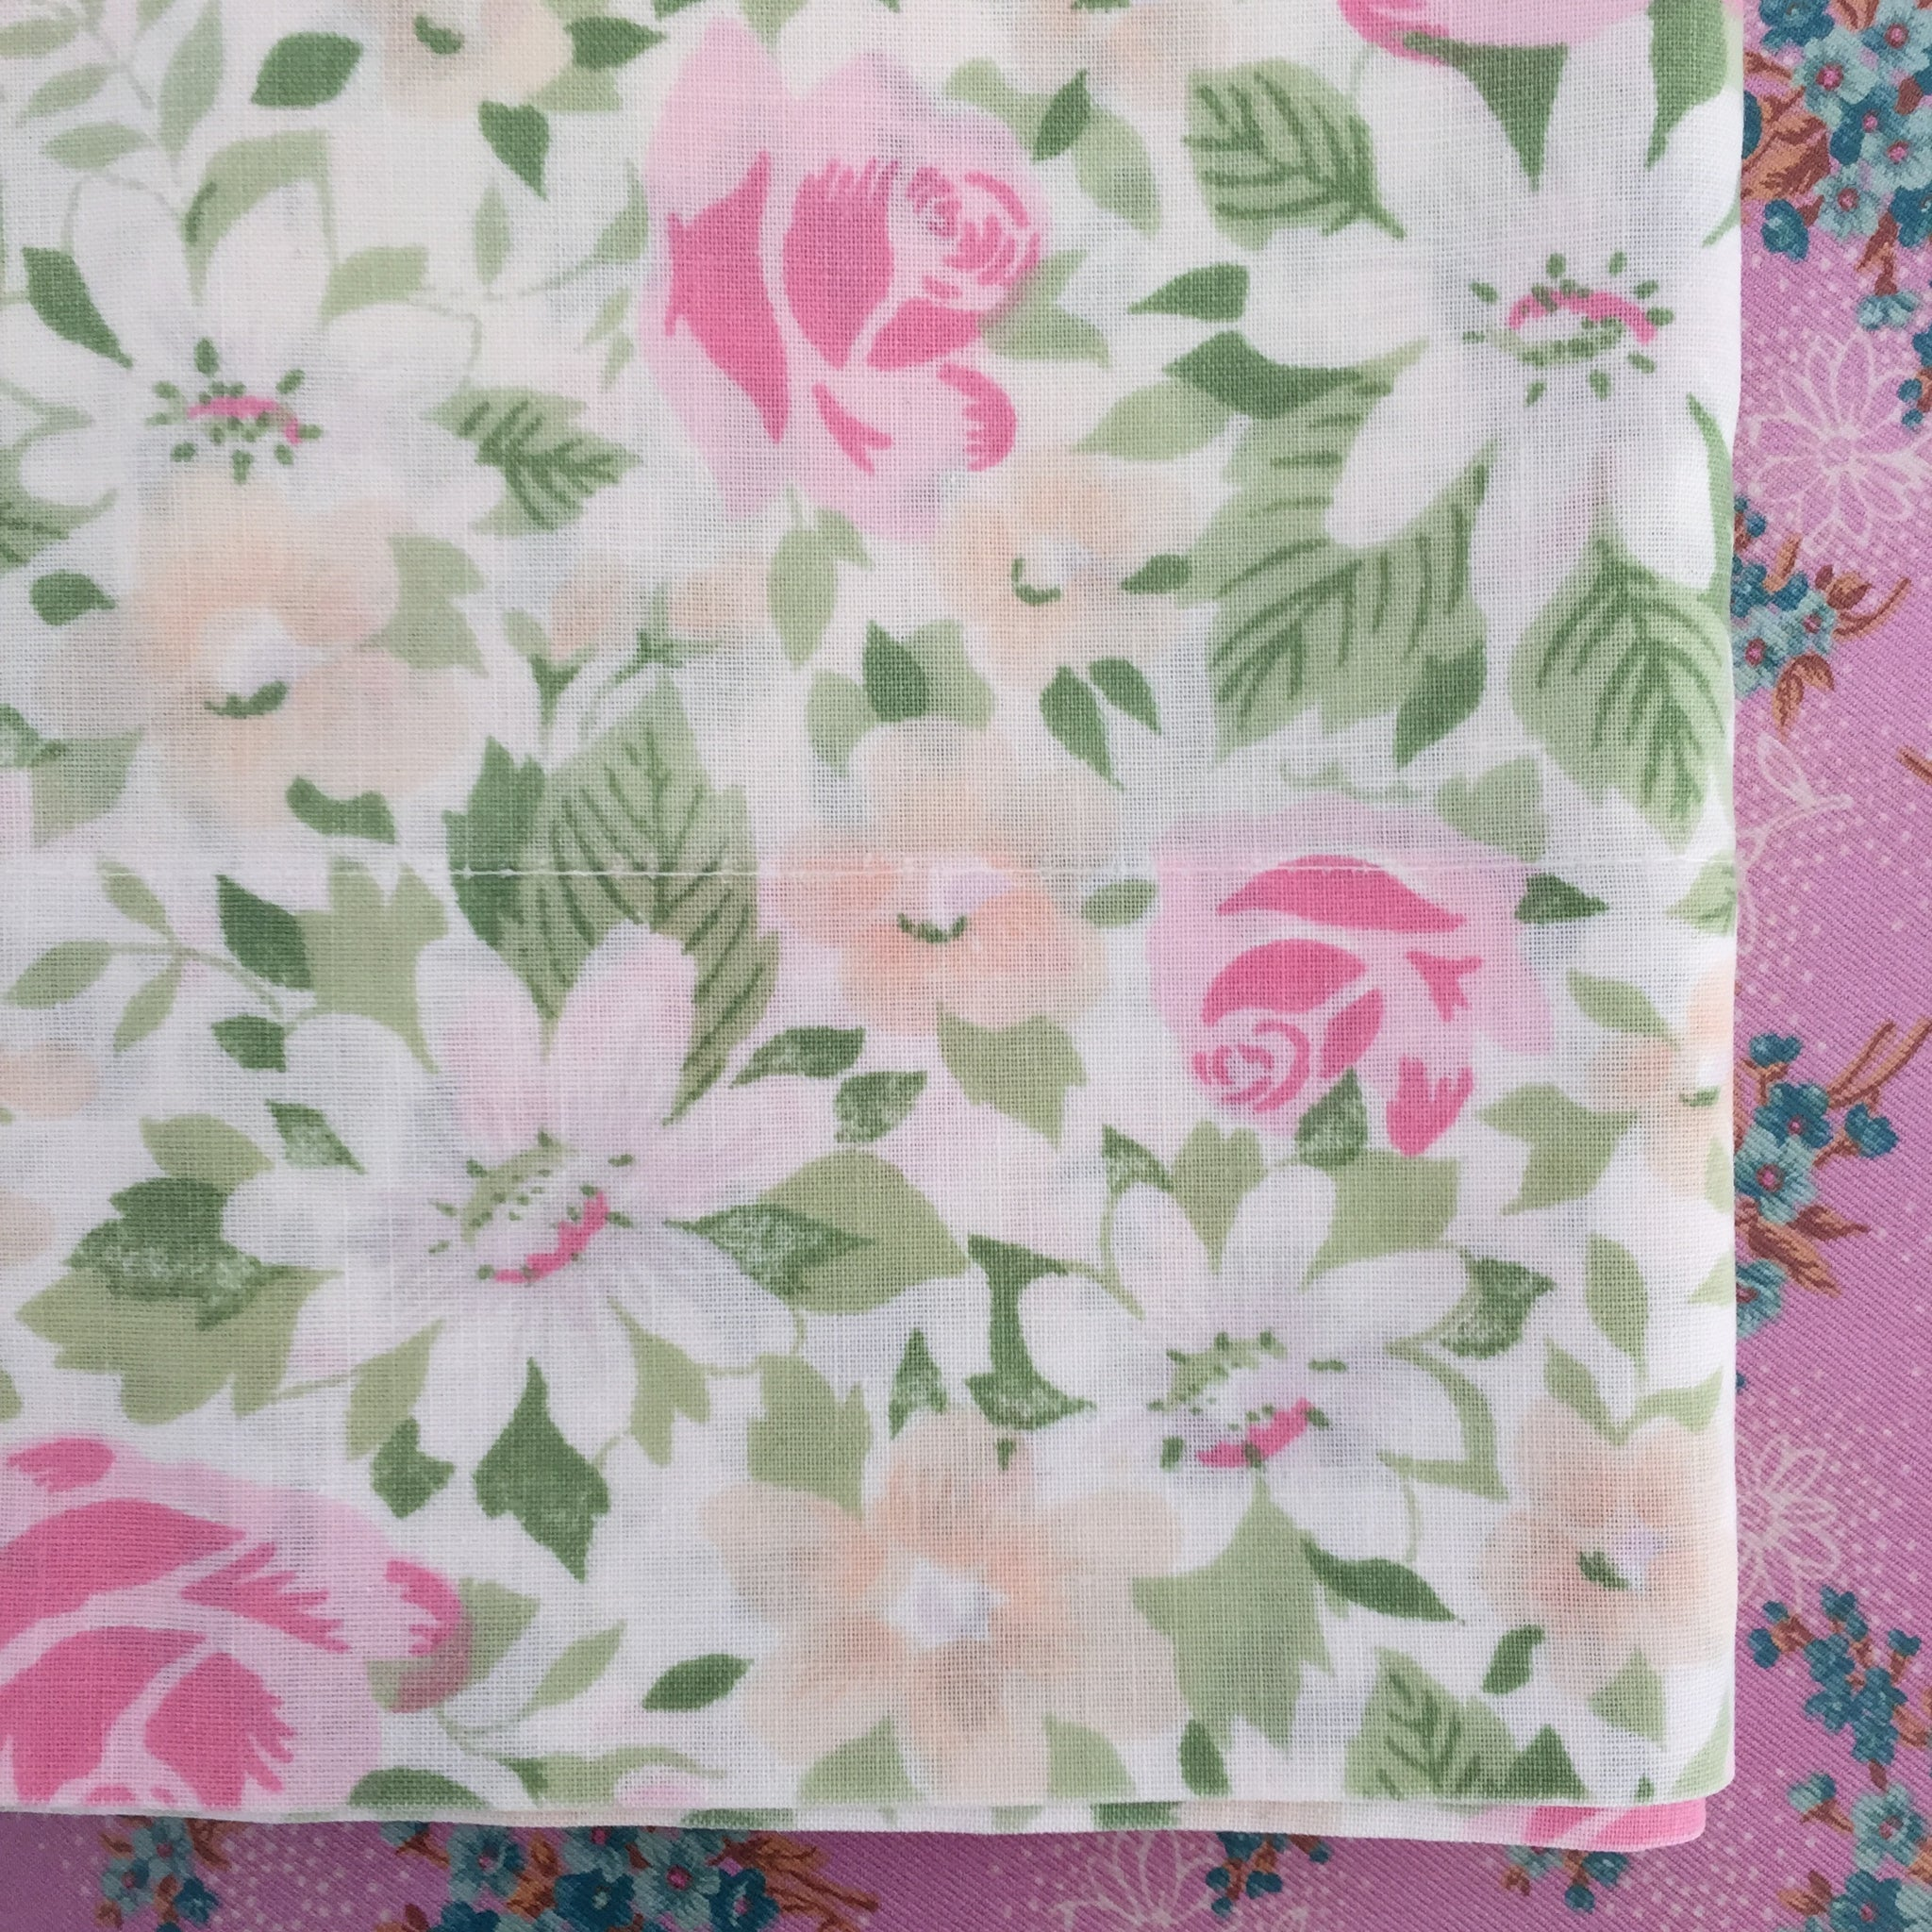 A Cute Vintage Pillow Case Perfect for a Little Girls Room